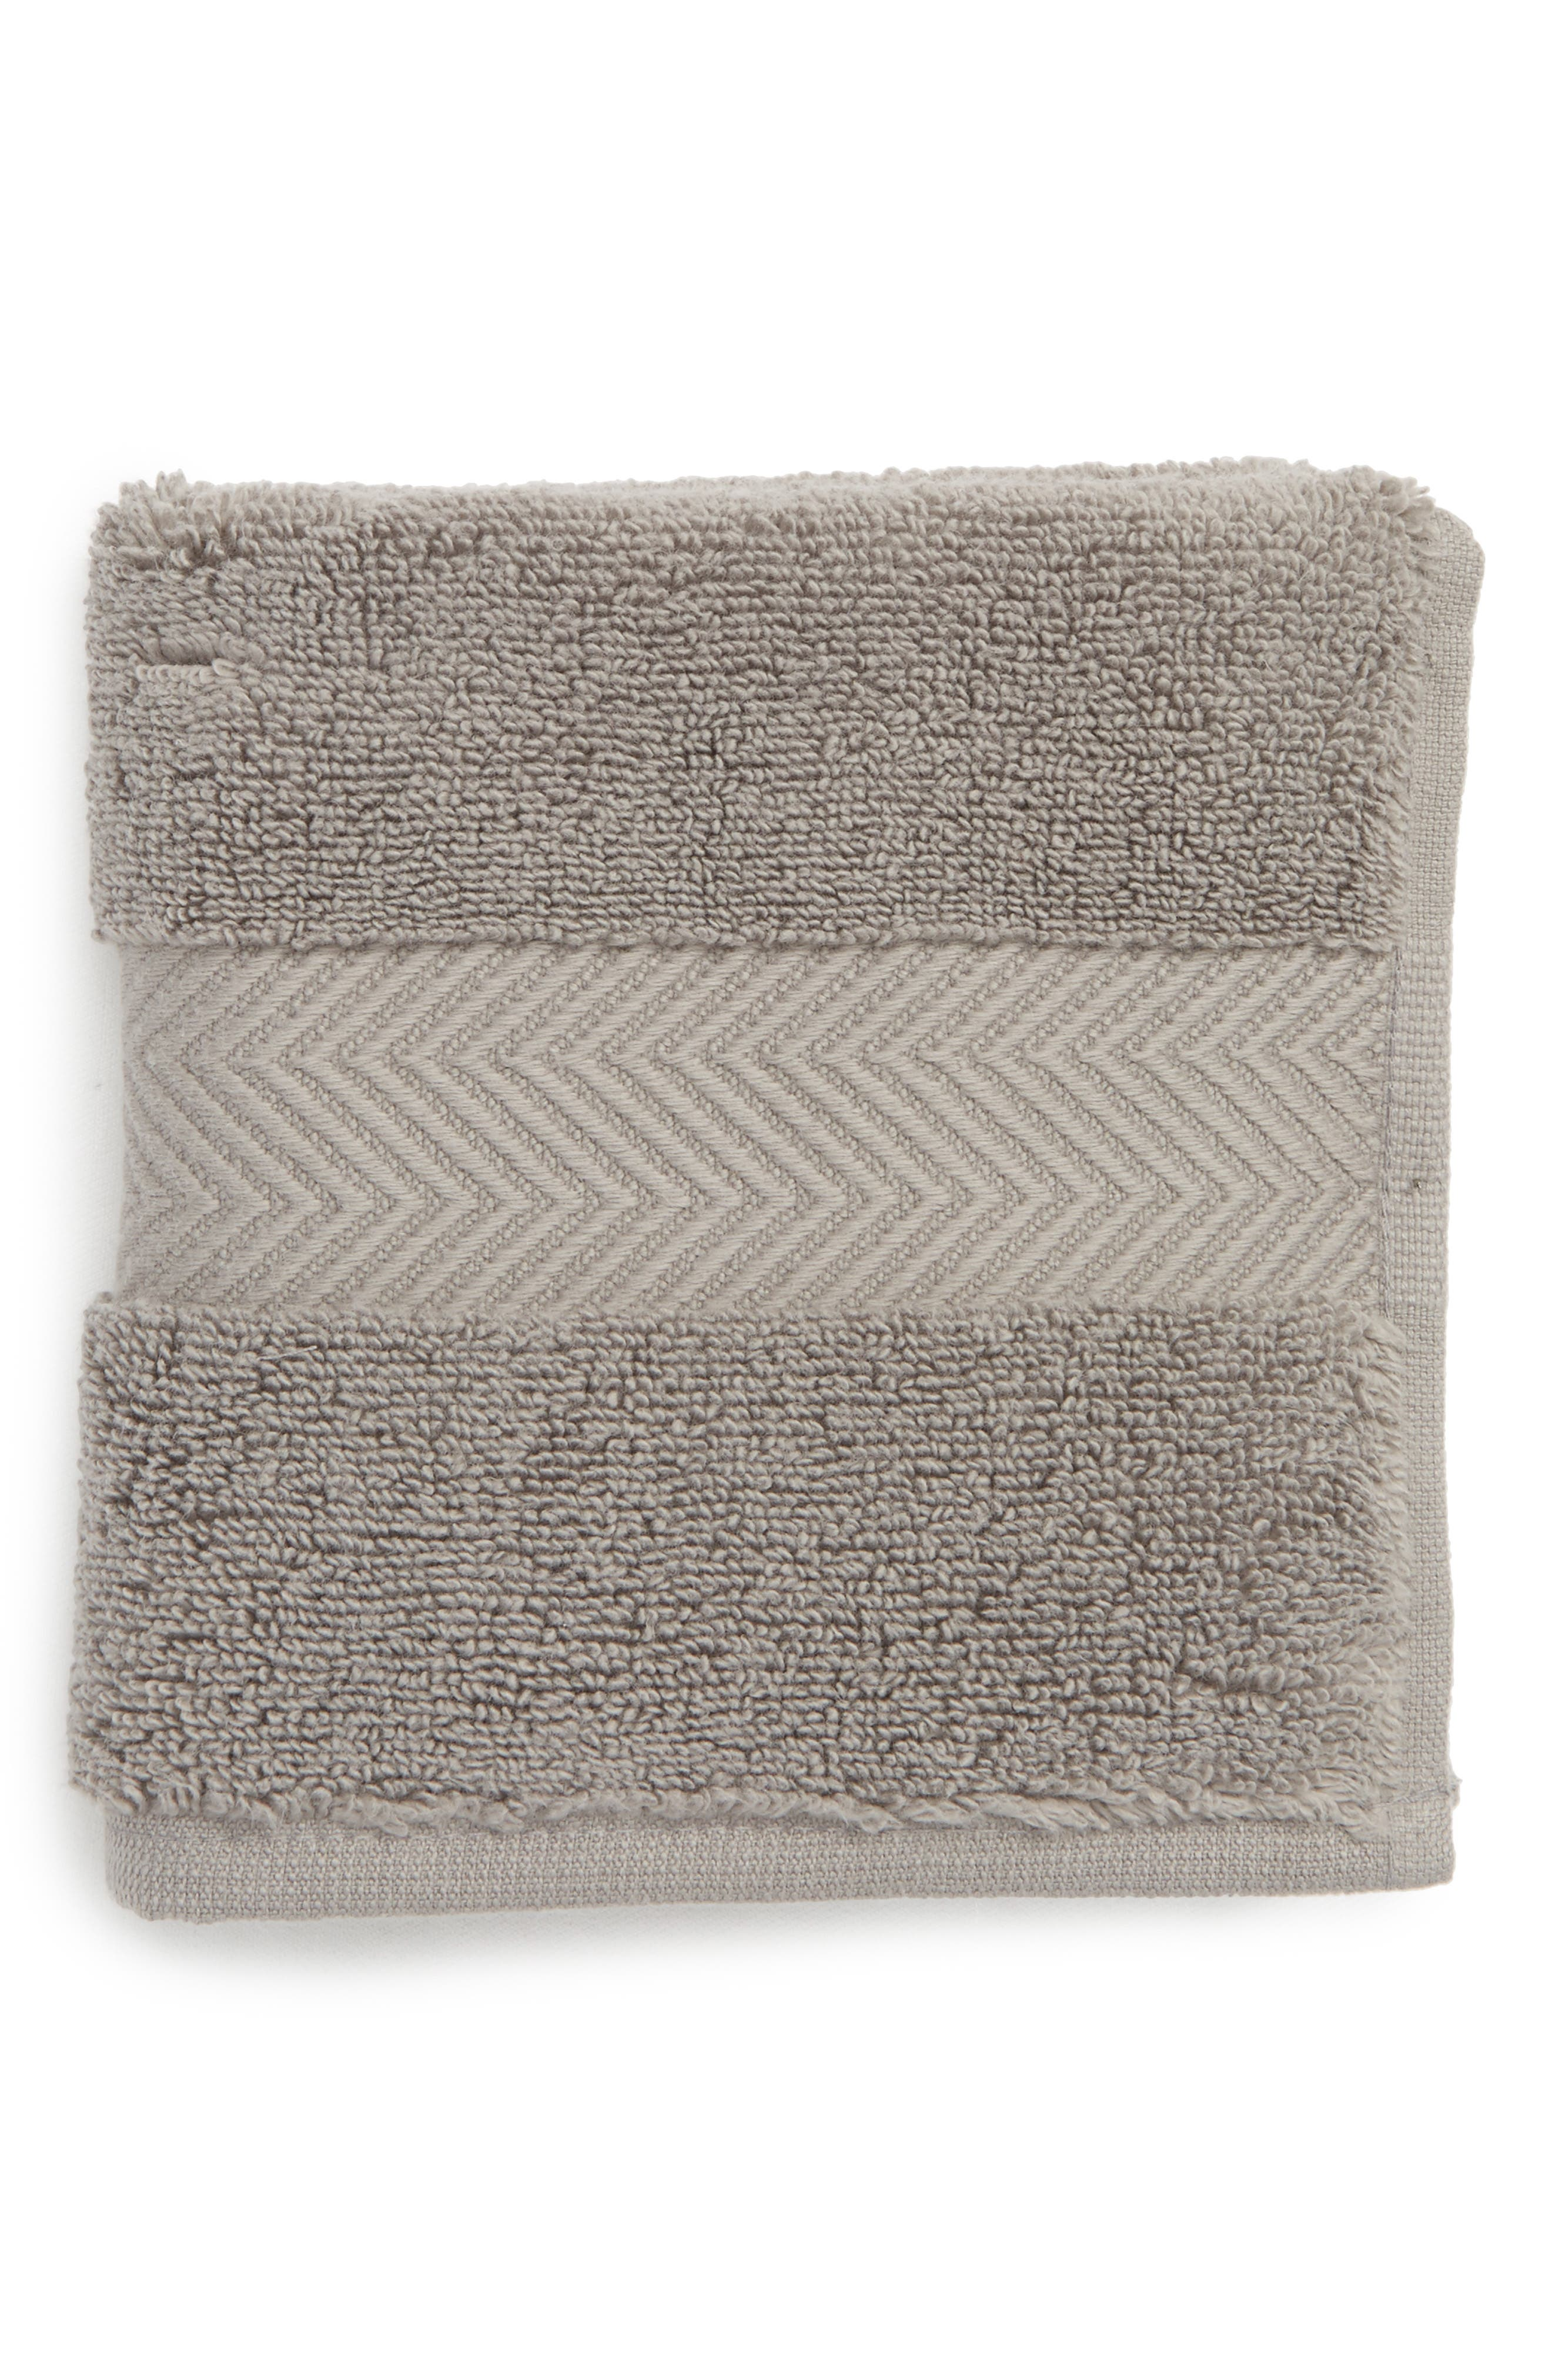 Hydrocotton Washcloth,                             Alternate thumbnail 55, color,